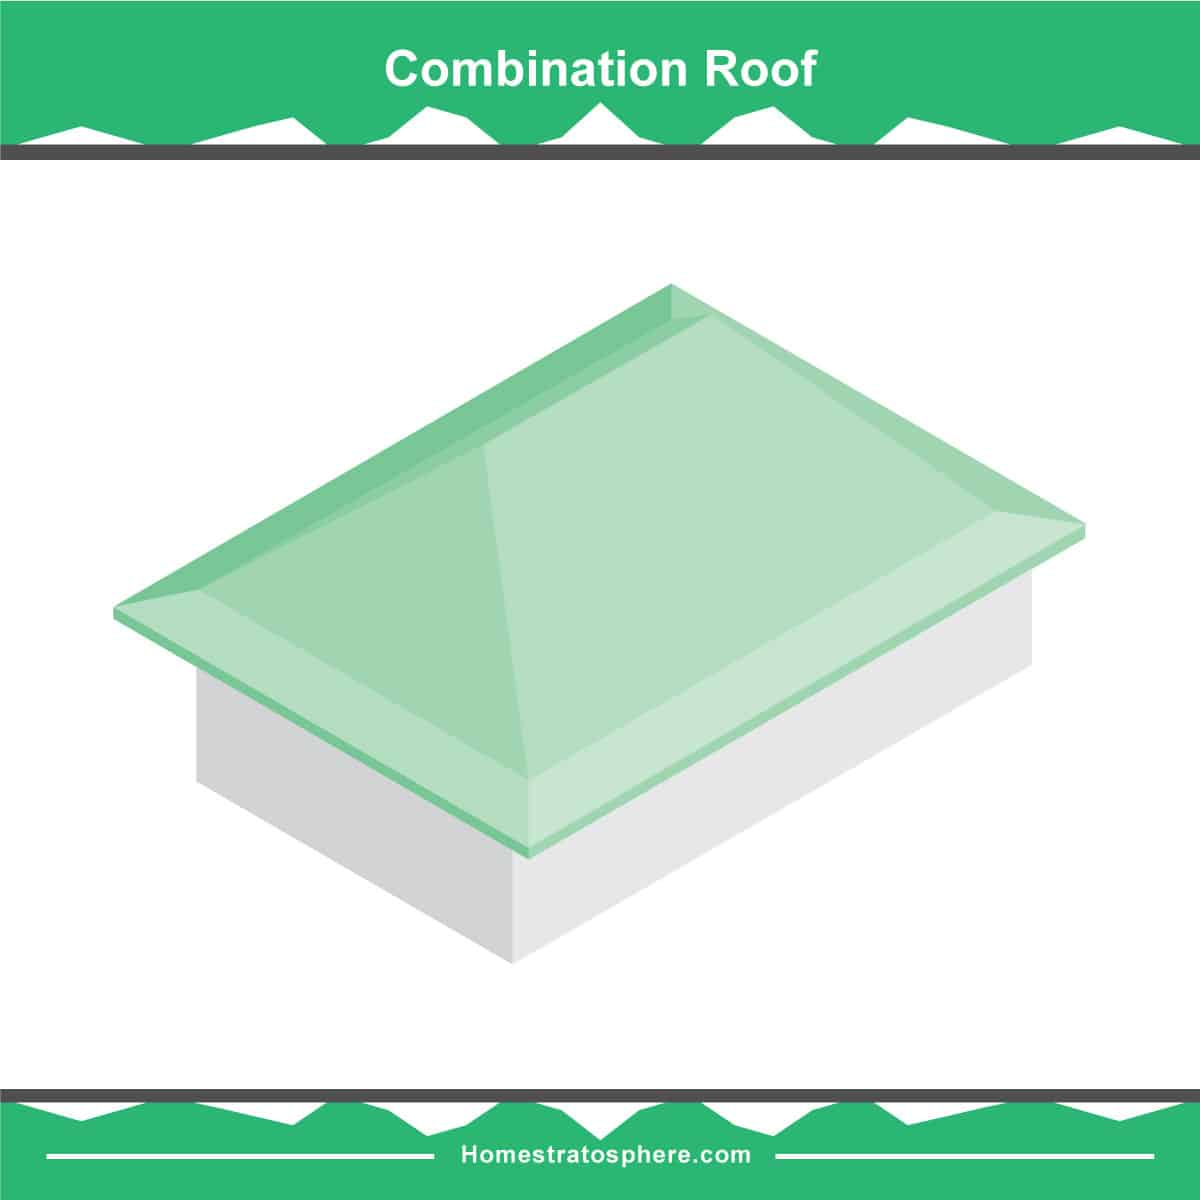 Combination roof diagram